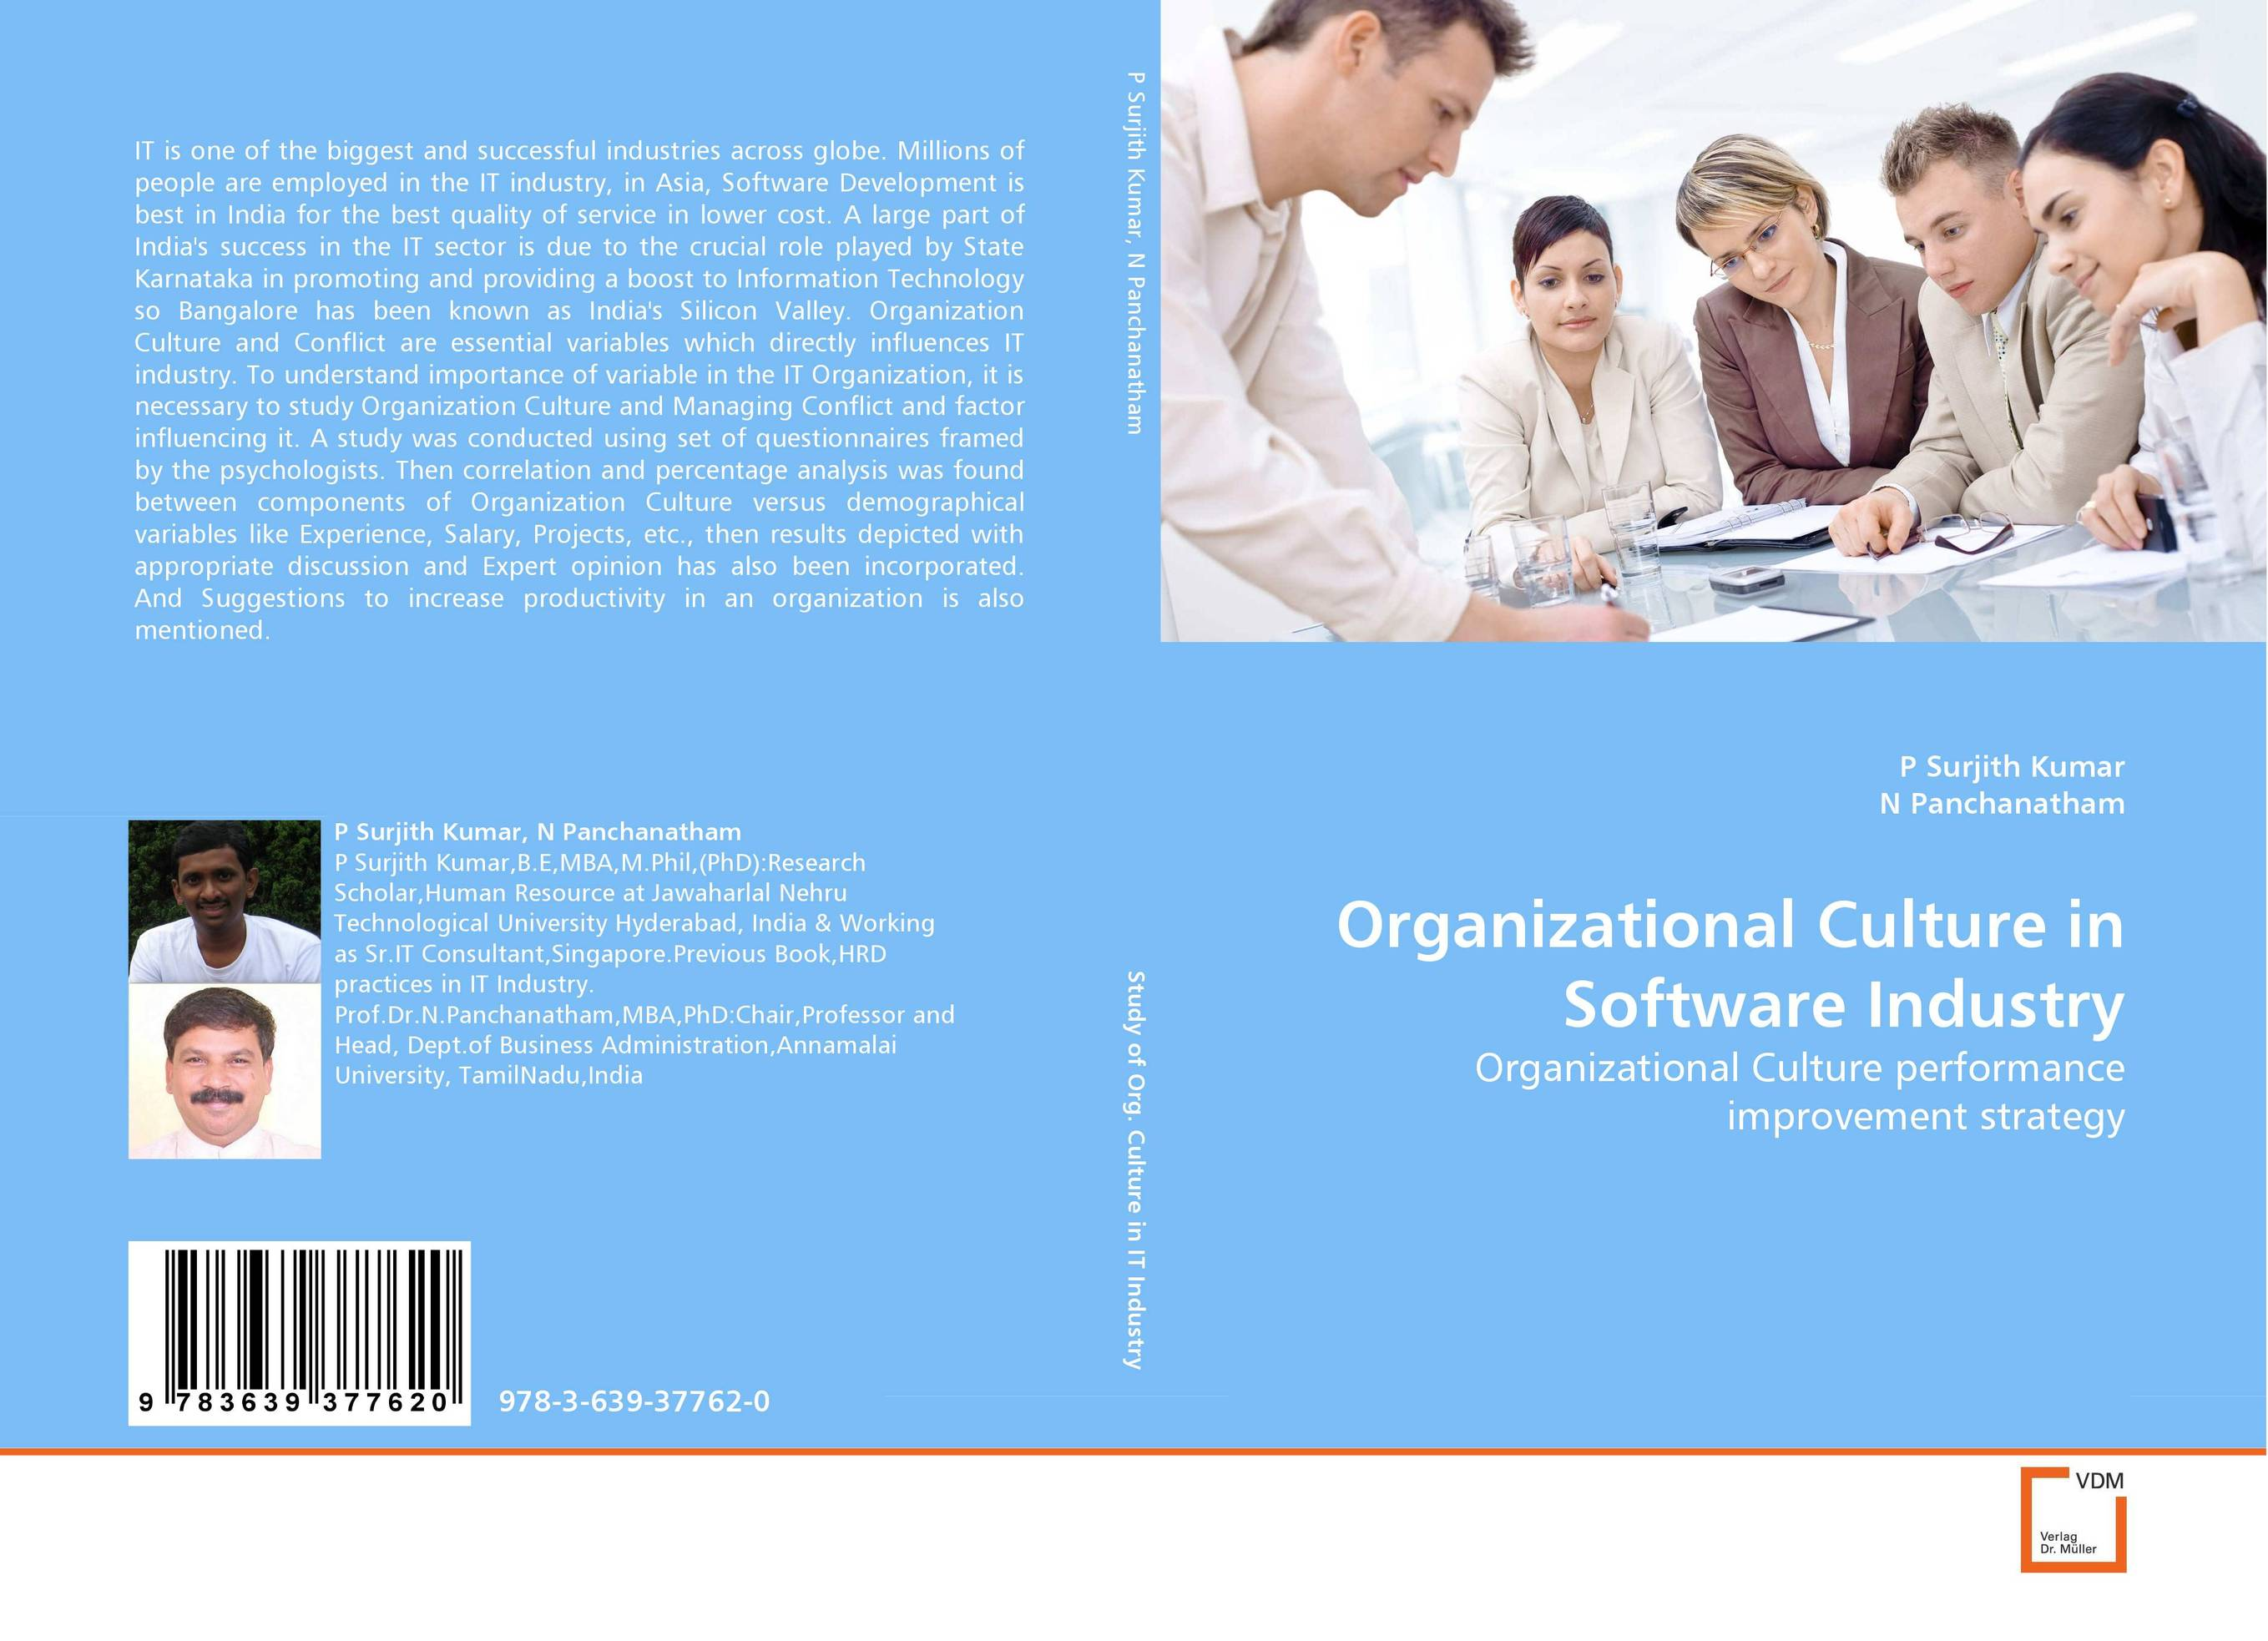 Organizational Culture in Software Industry